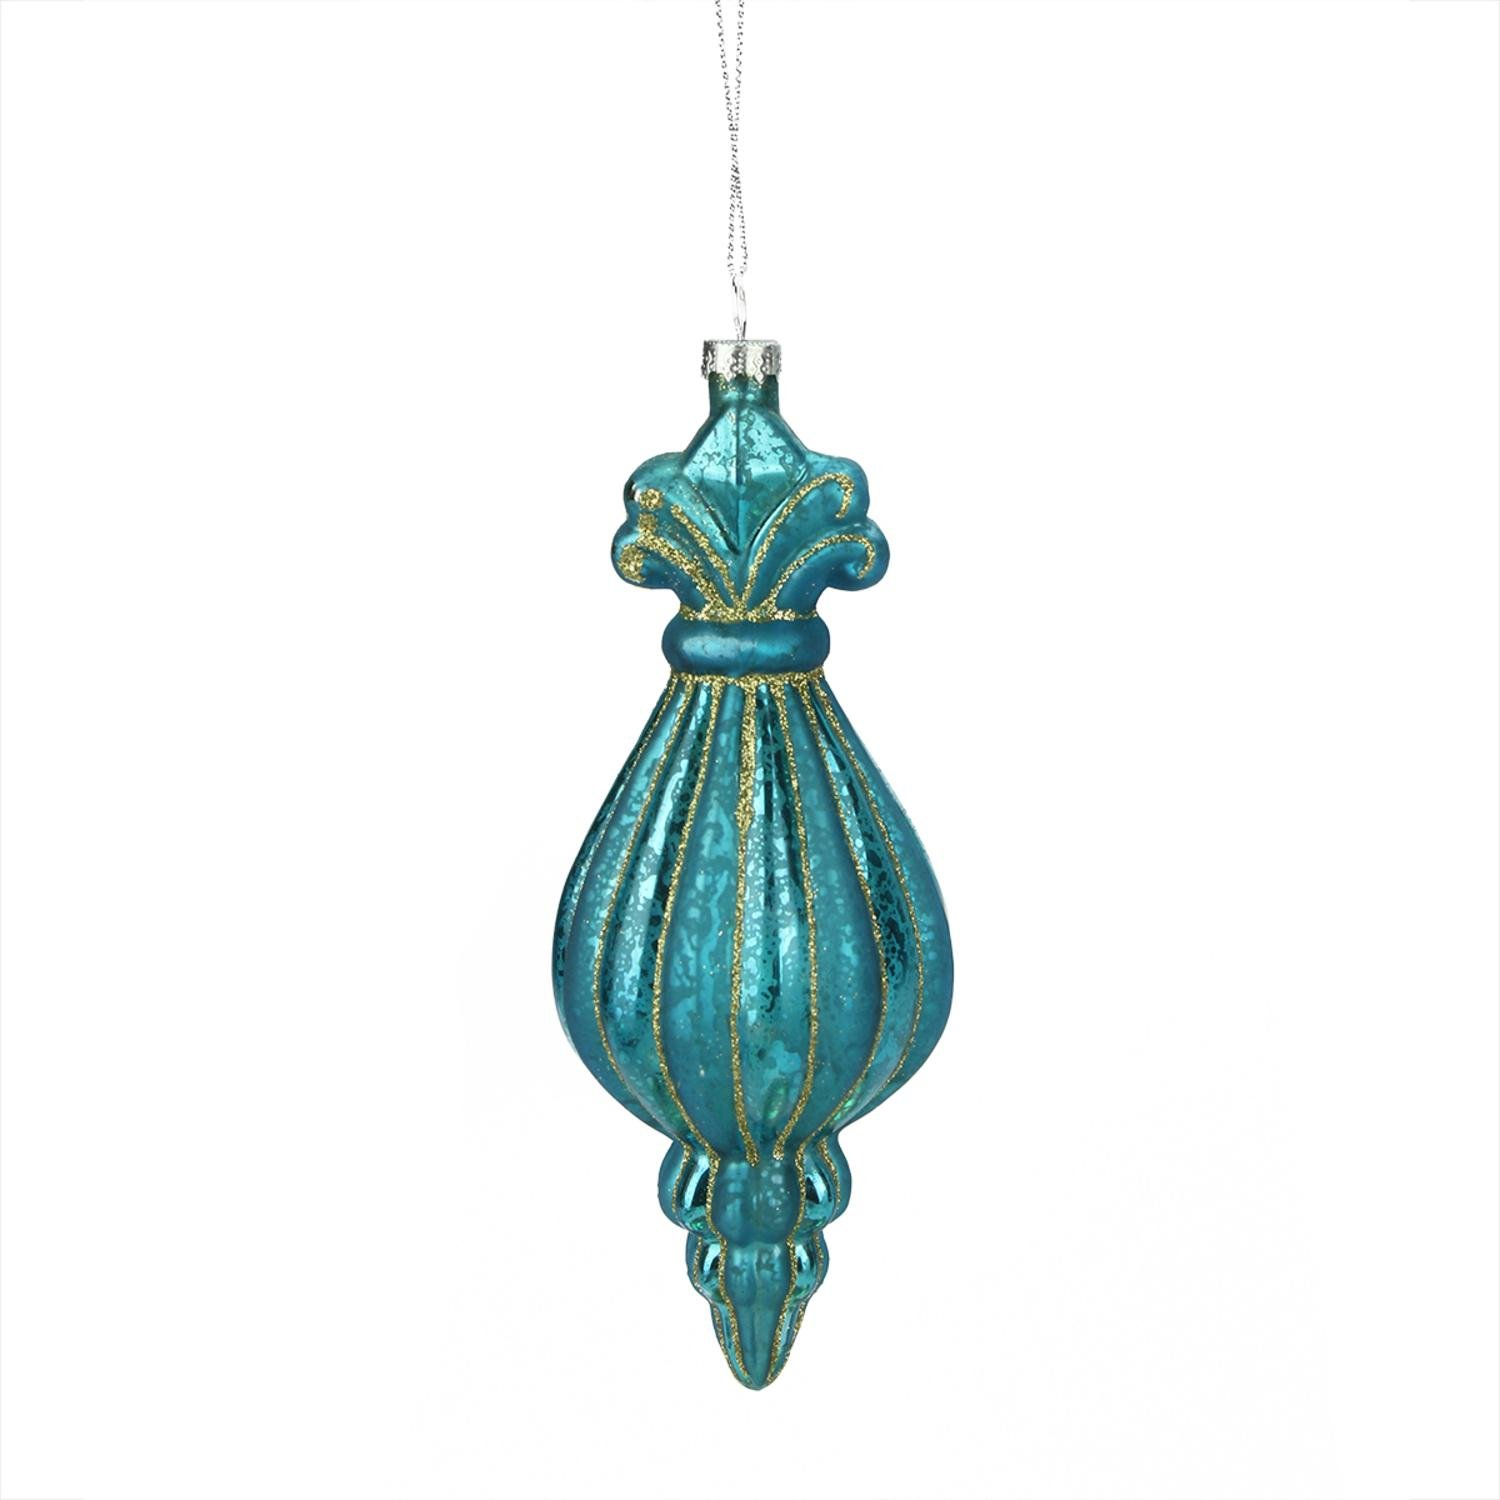 7 7″ Turquoise Ribbed Mercury Glass Christmas Finial Ornament